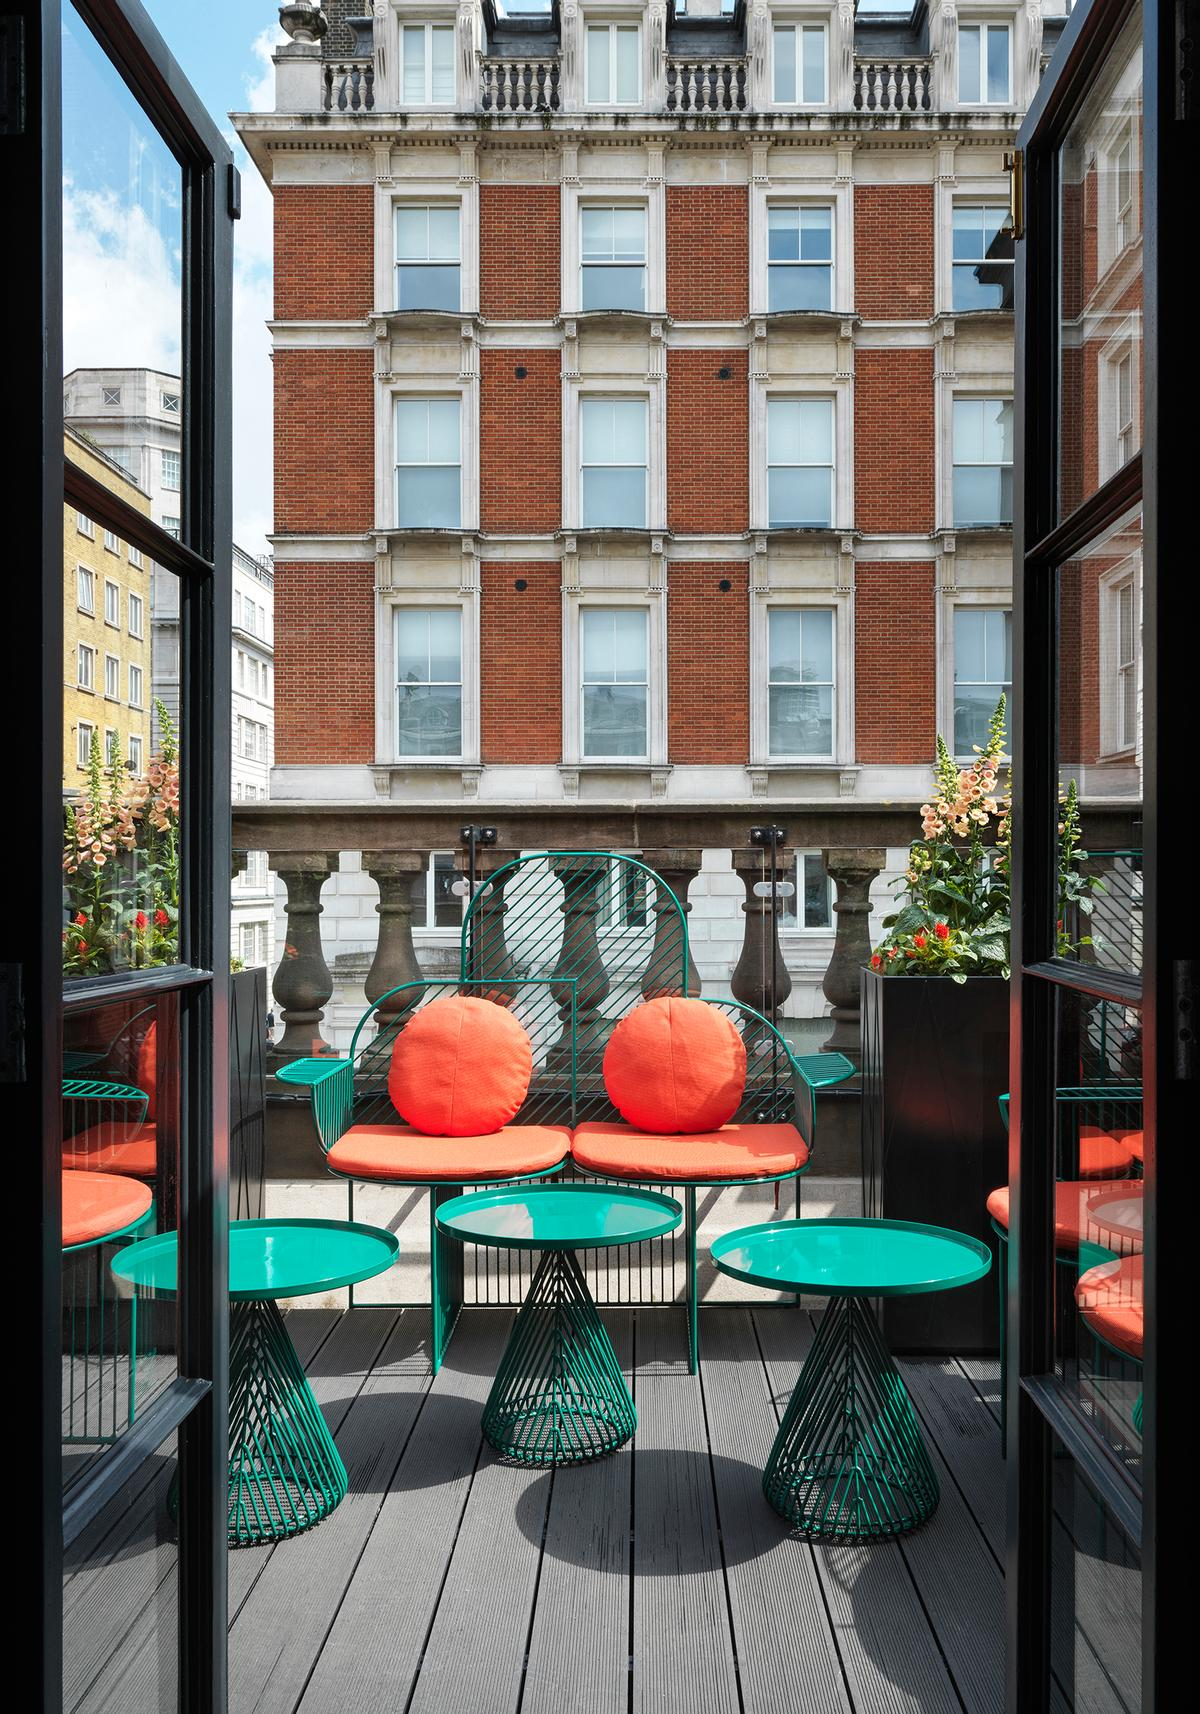 Orange cushions are introduced for outside seating / Matteo Piazza